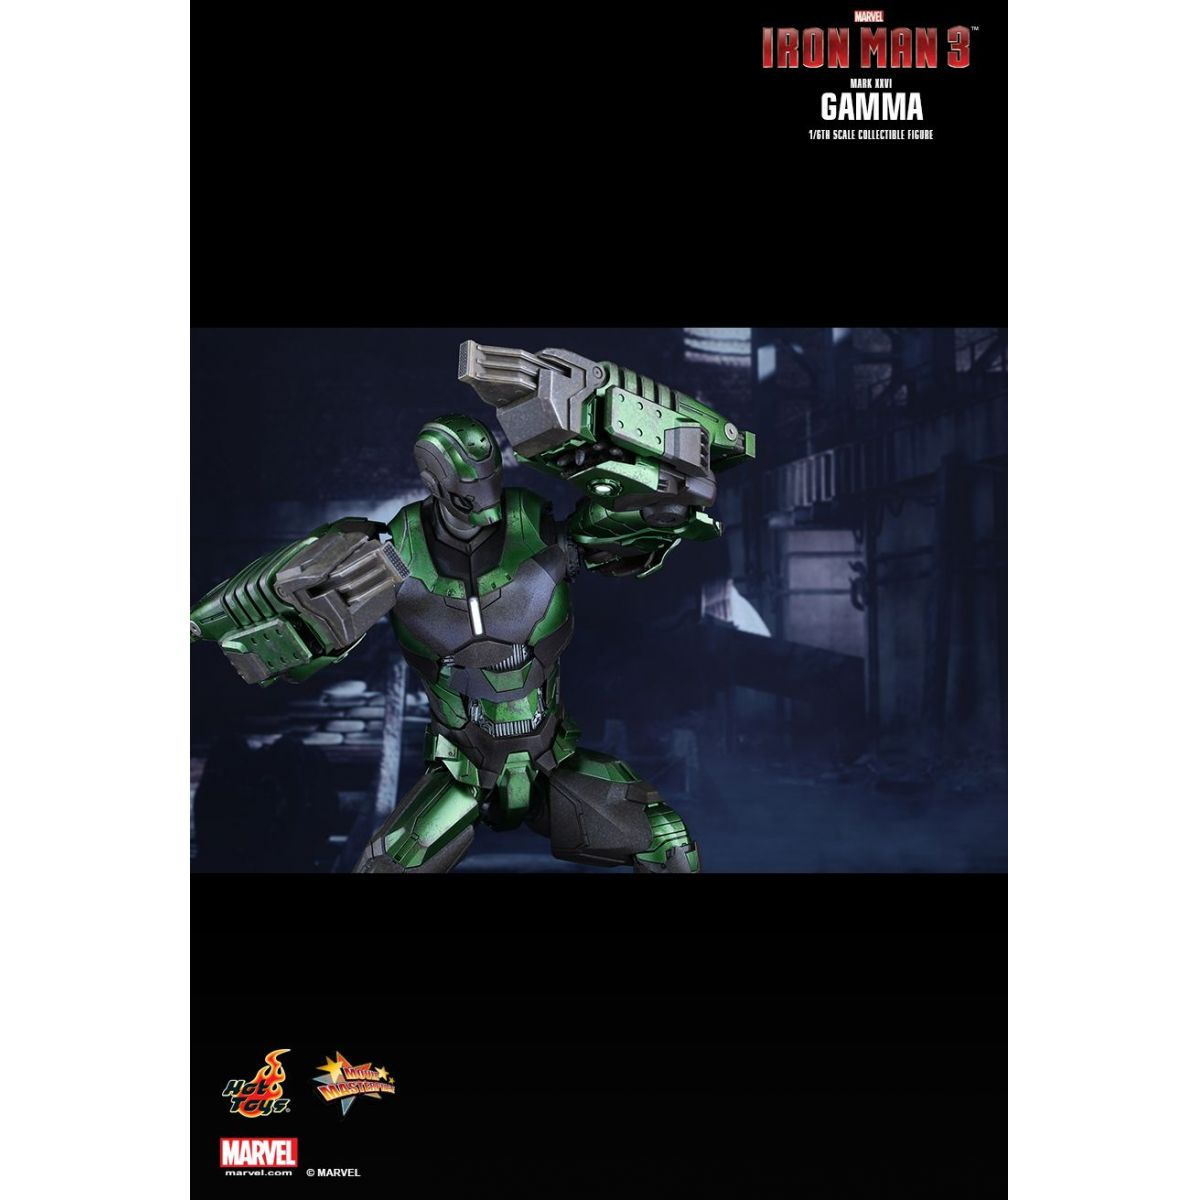 Boneco Iron Man Mark XXVI Gamma: Homem de Ferro 3 (Iron Man 3) Exclusive Escala 1/6 - Hot Toys